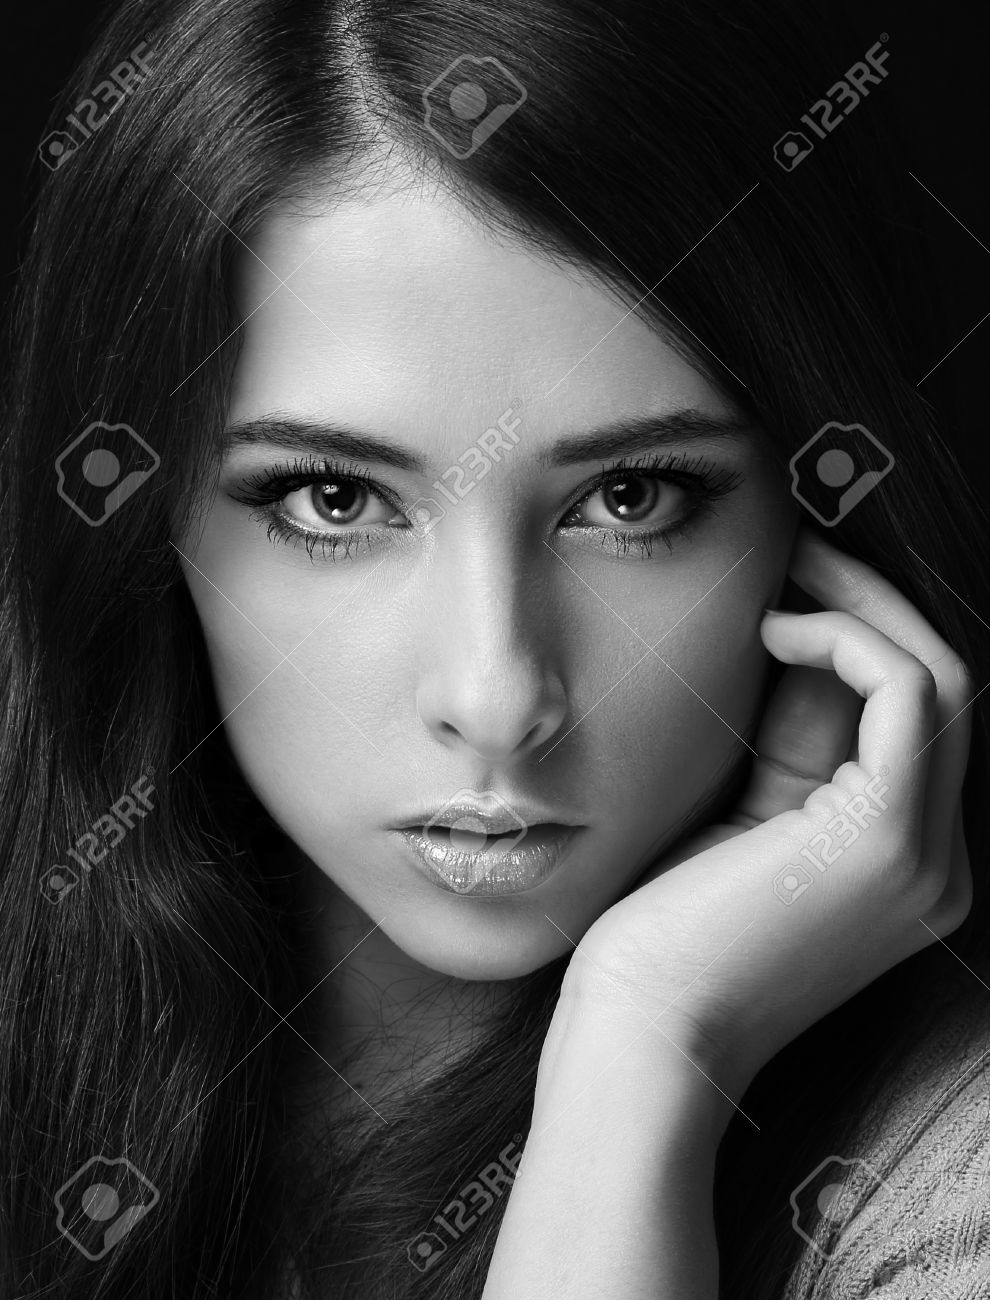 Sexy woman face closeup black and white portrait stock photo 24467381